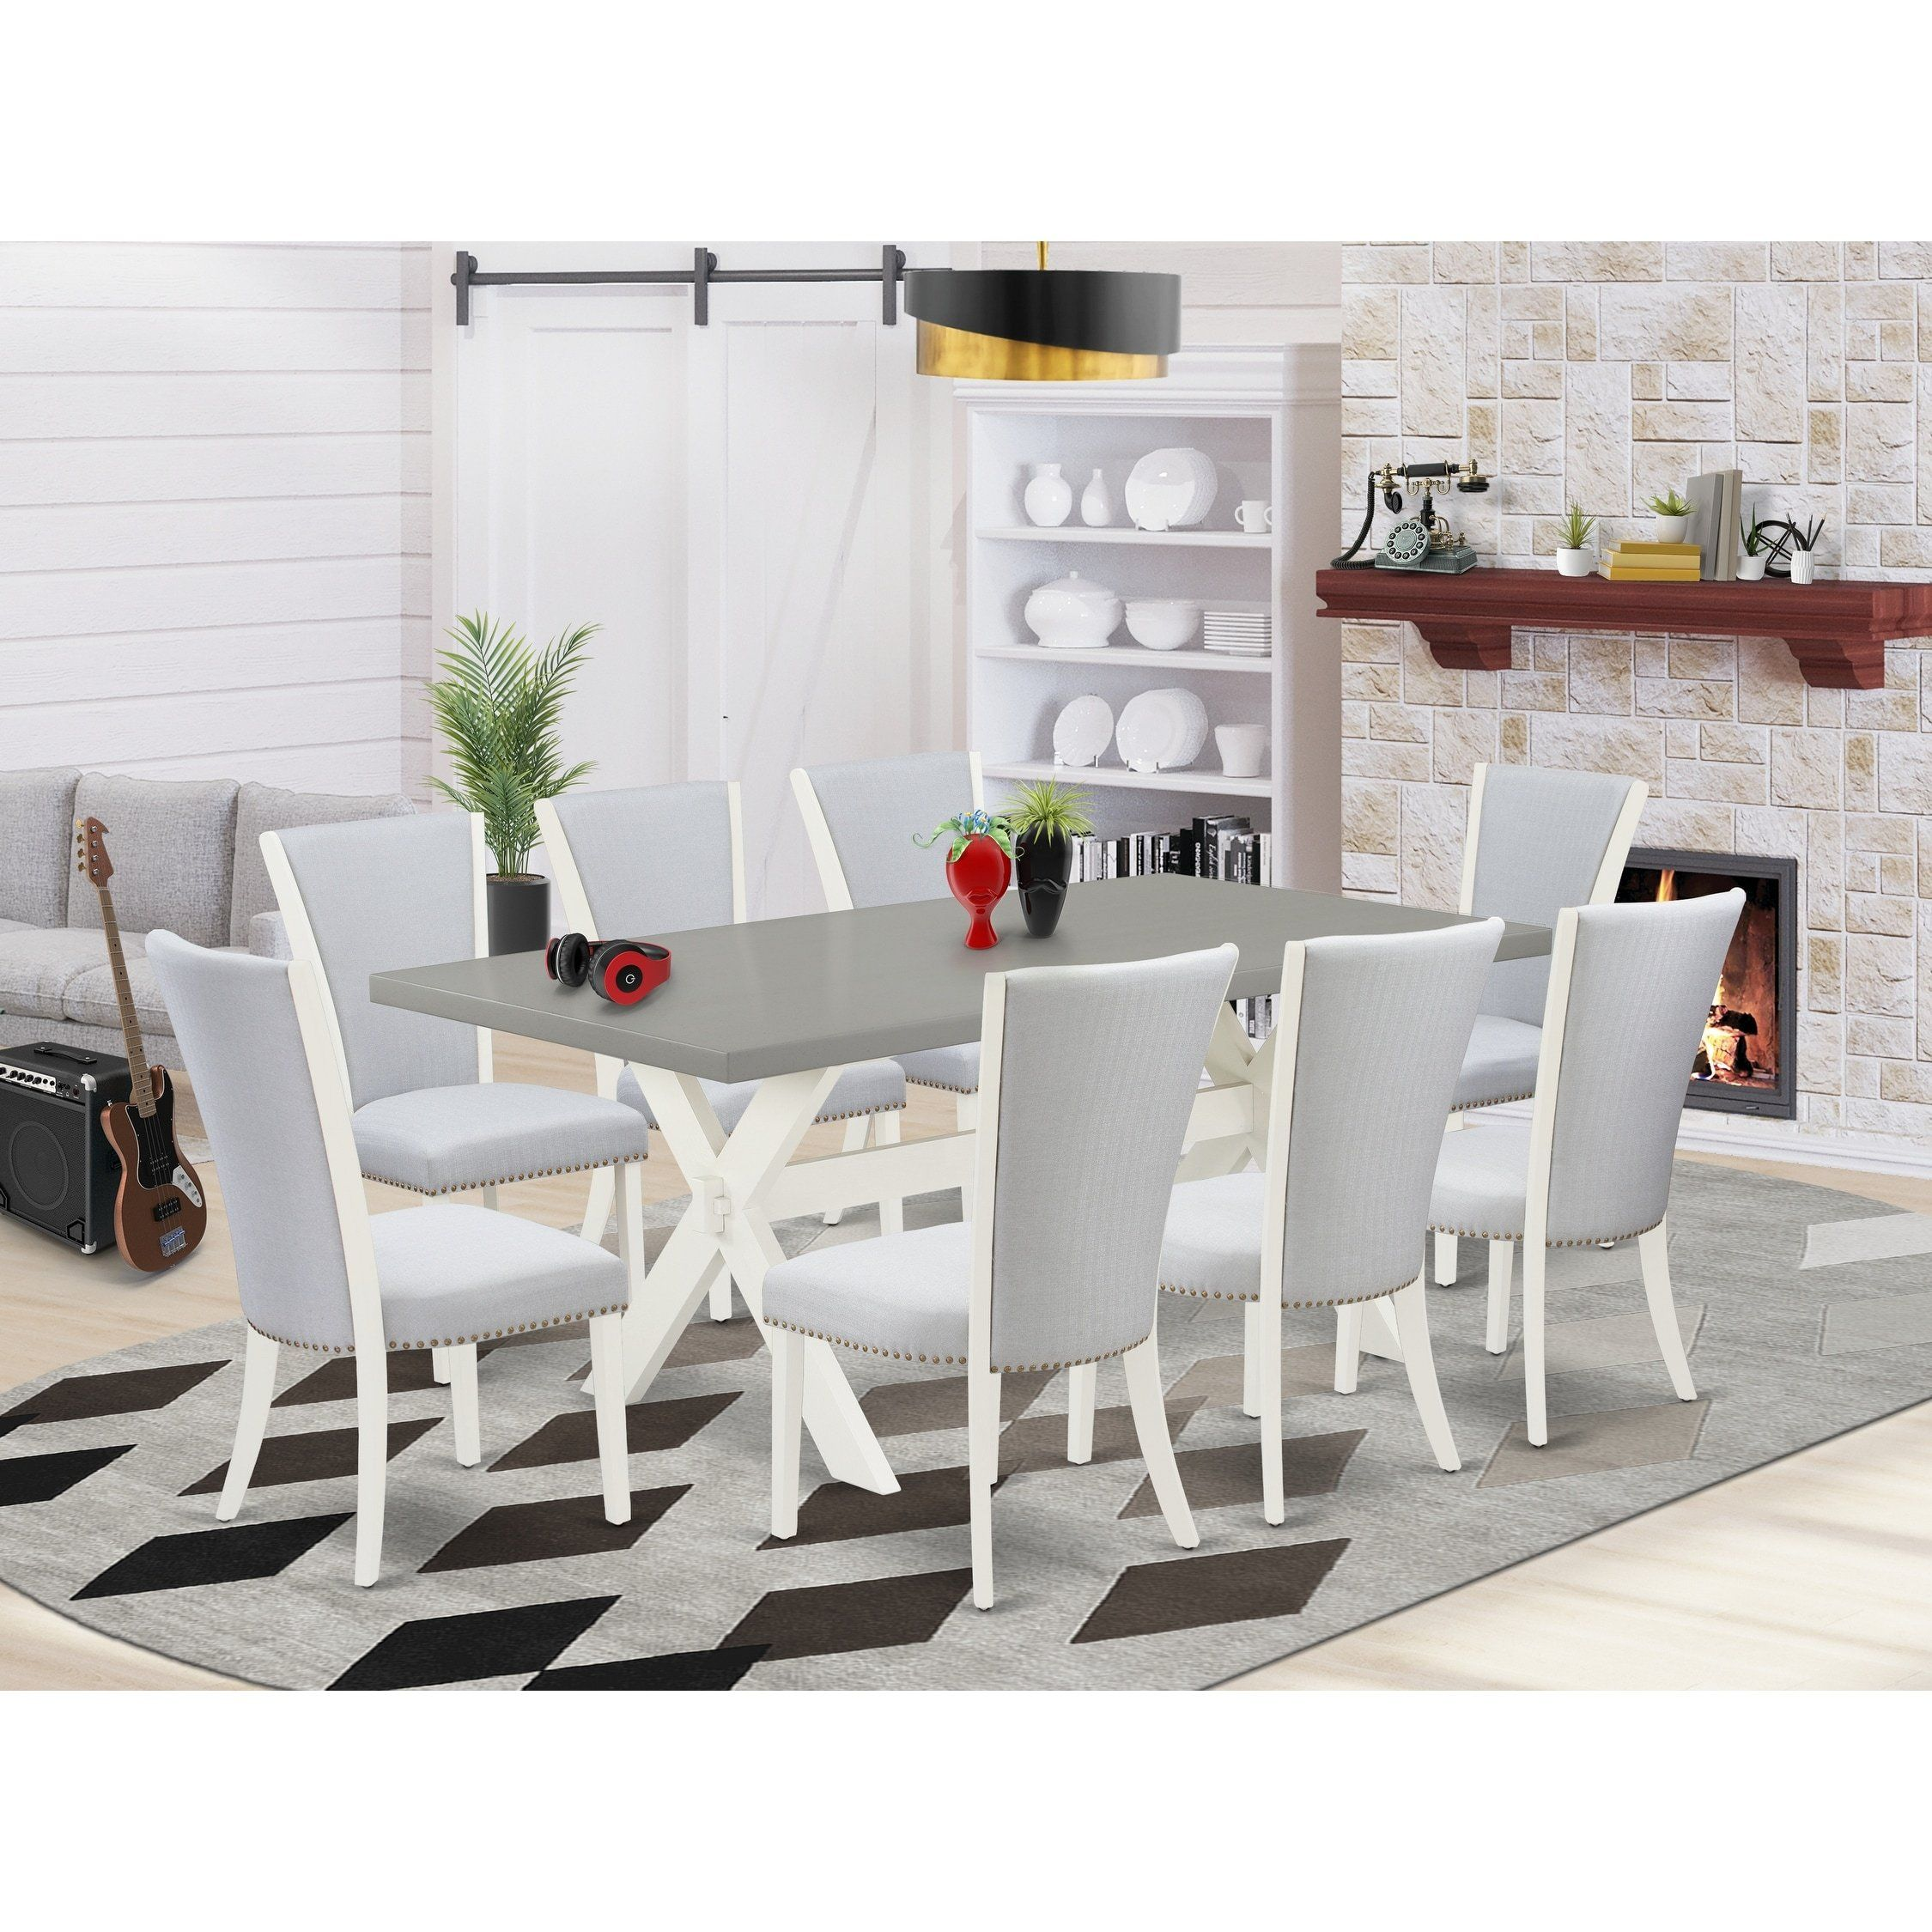 East West Furniture Dining Room Set   X9VE9 9   Home Accessories